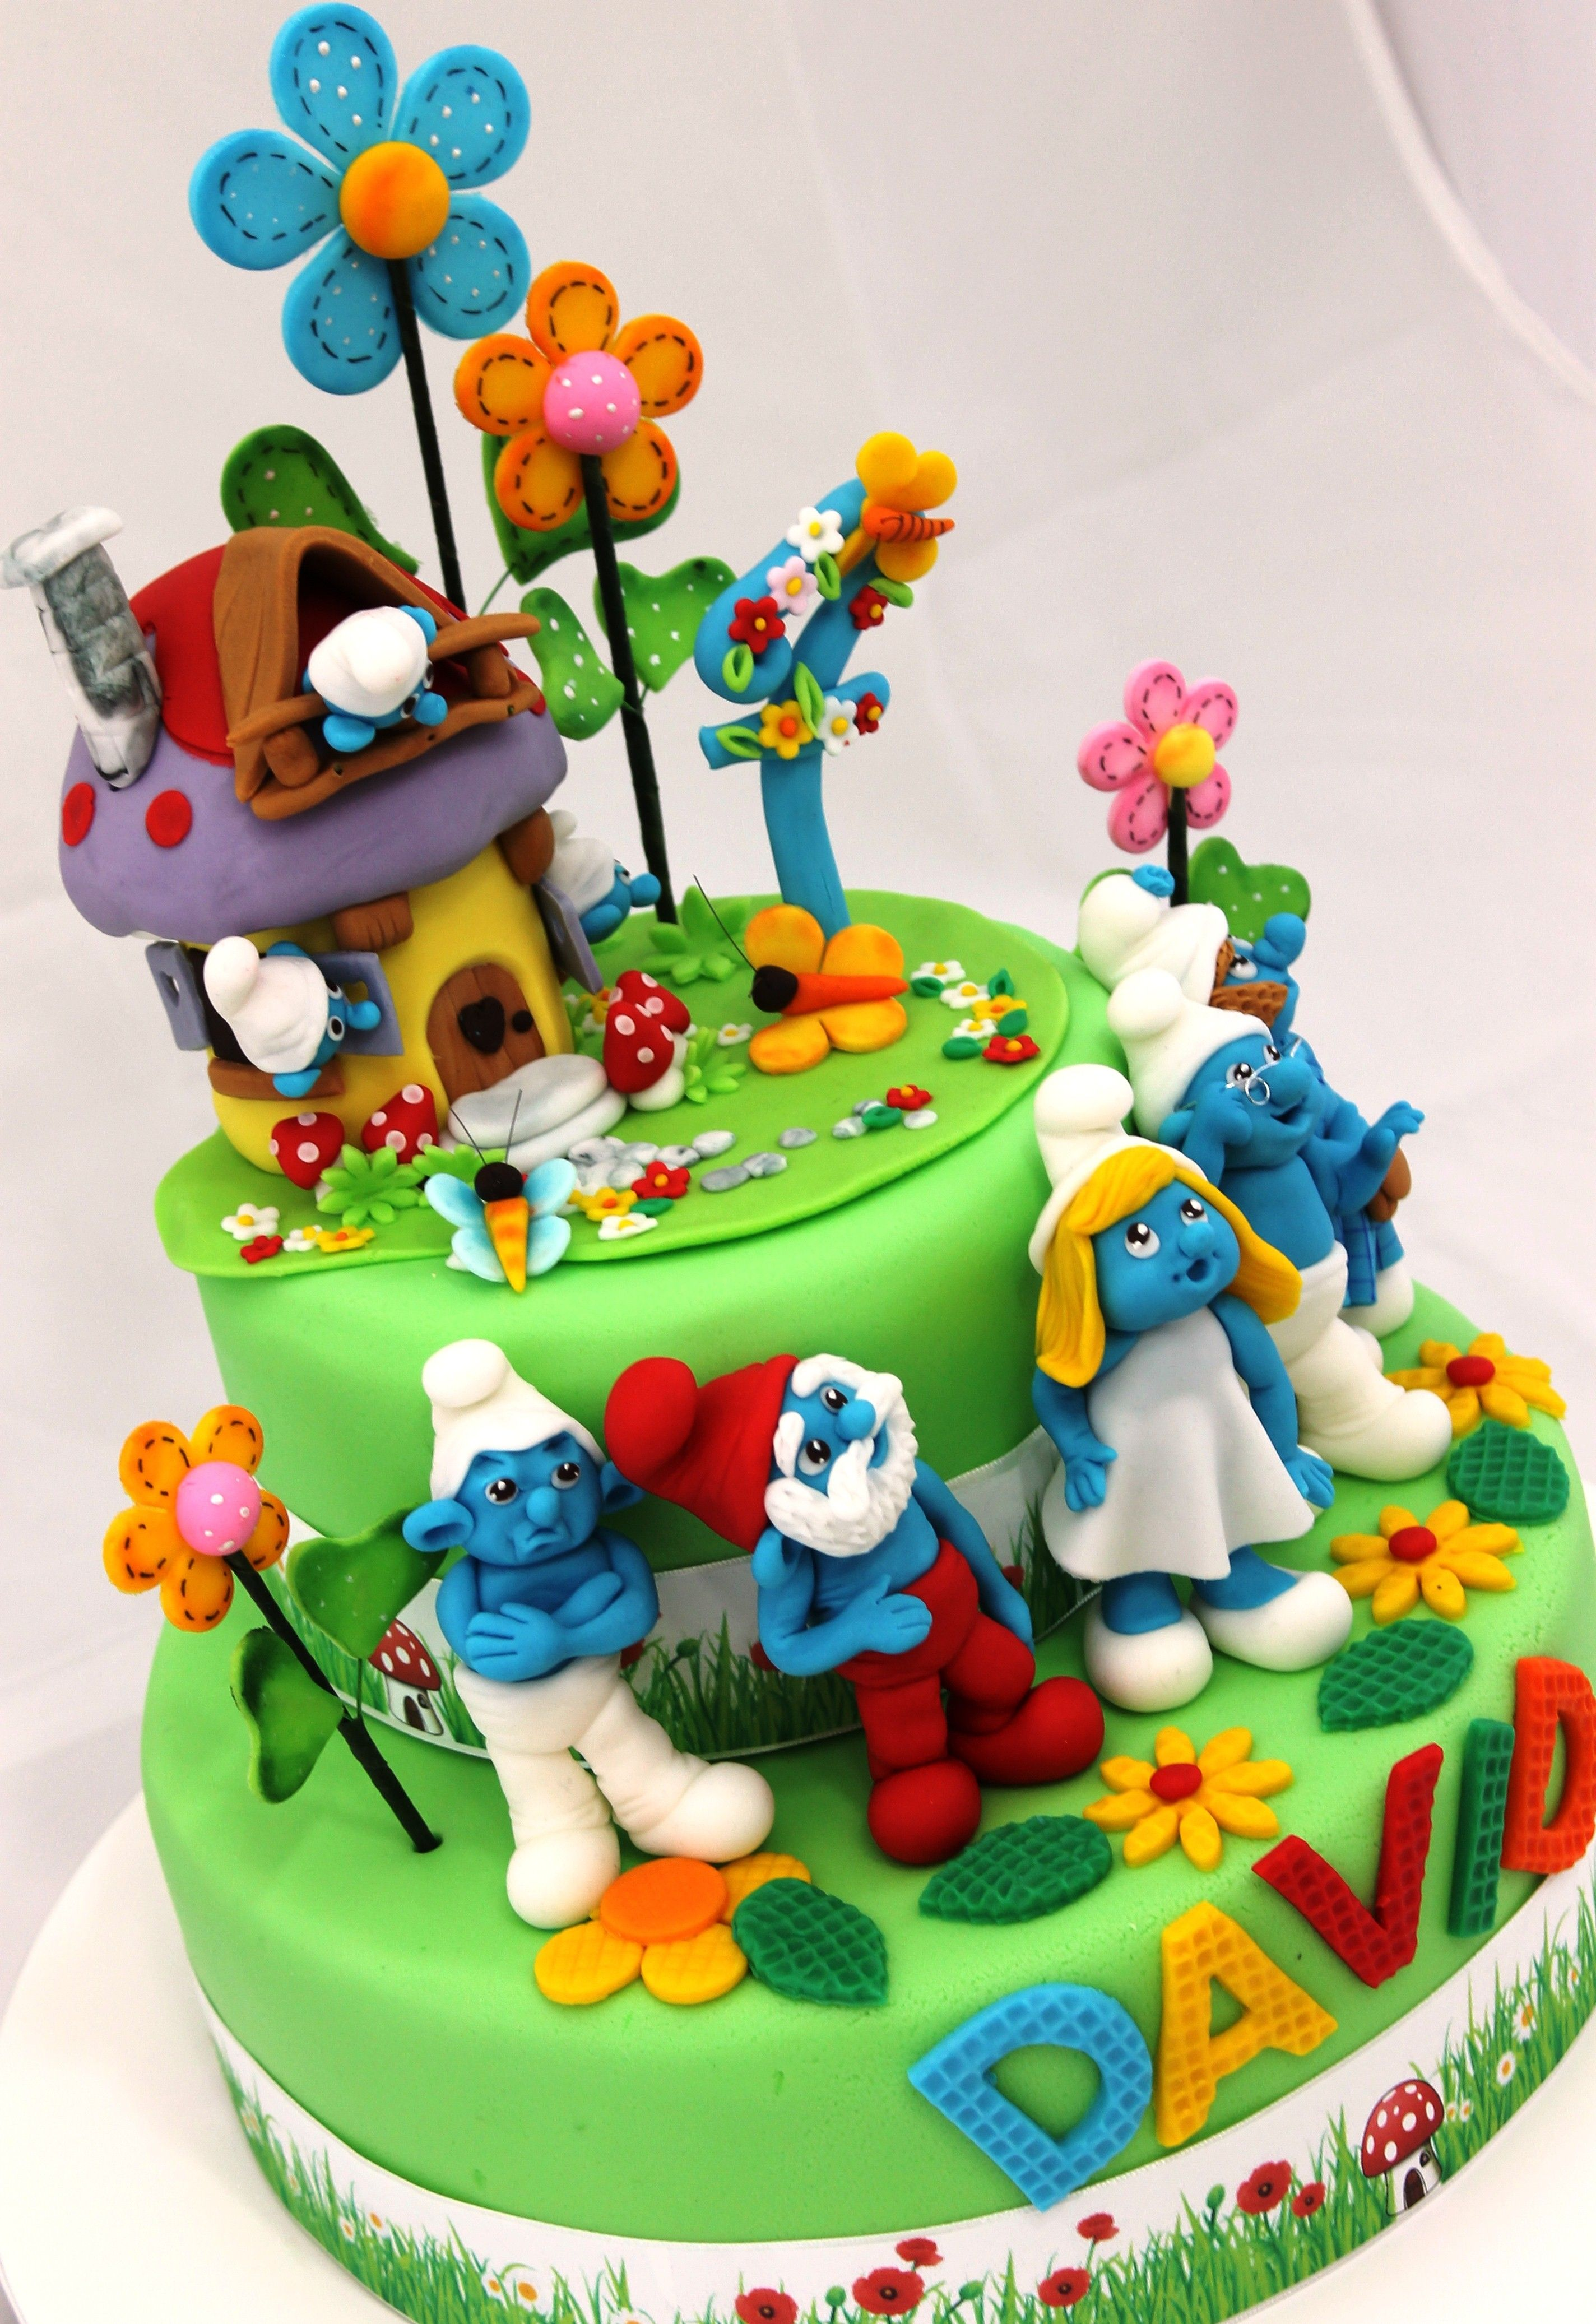 Natalie s creative cakes animal cakes - Way Cool Smurf Cake Top Smurfs Cakes Birthday Party Girl Boys Schtroumphs